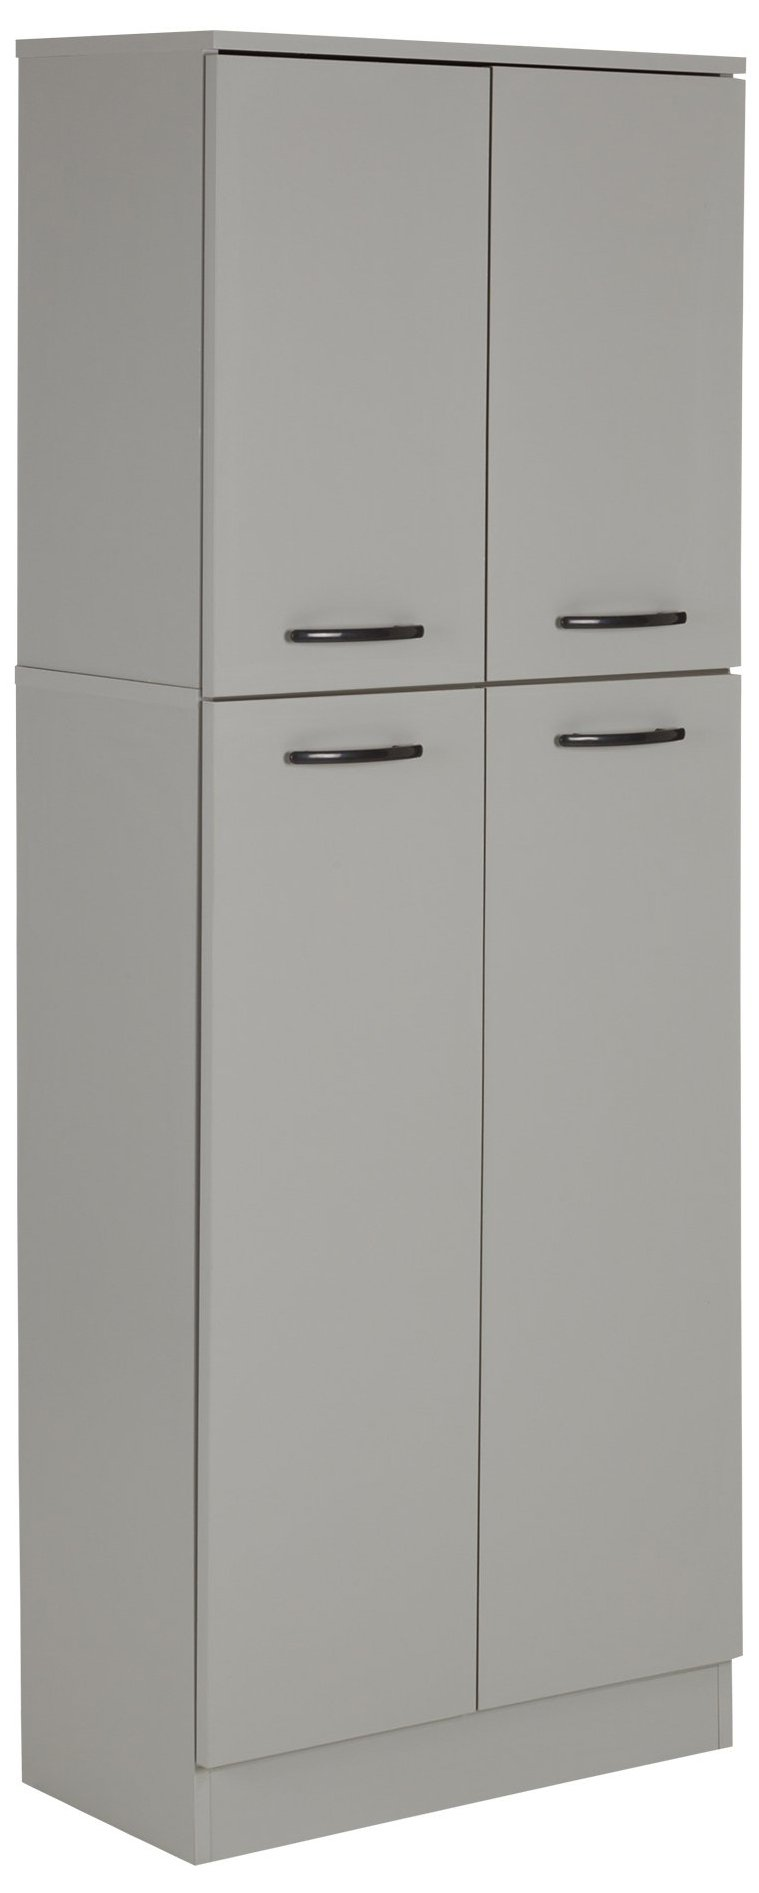 South Shore 4-Door Storage Pantry with Adjustable Shelves, Soft Gray